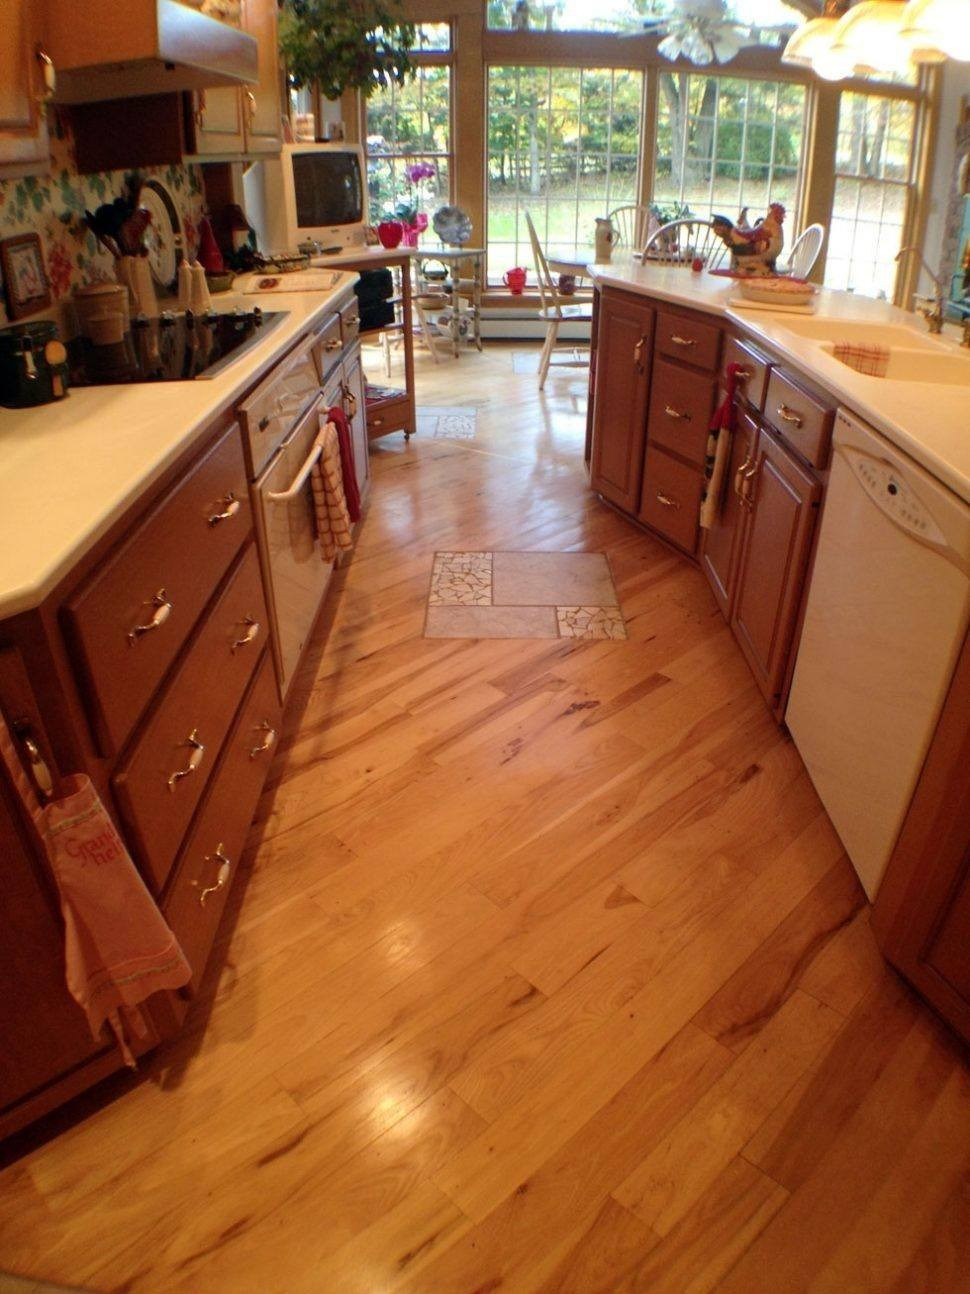 Refinished Grey Hardwood Floors Of 10 Hardwood Flooring Cost Per Sq Ft for 2018 Best Flooring Ideas within Hardwood Flooring Cost Per Sq Ft Fresh Floor Floor Installod Floors Ideas Flooring Installation Cost